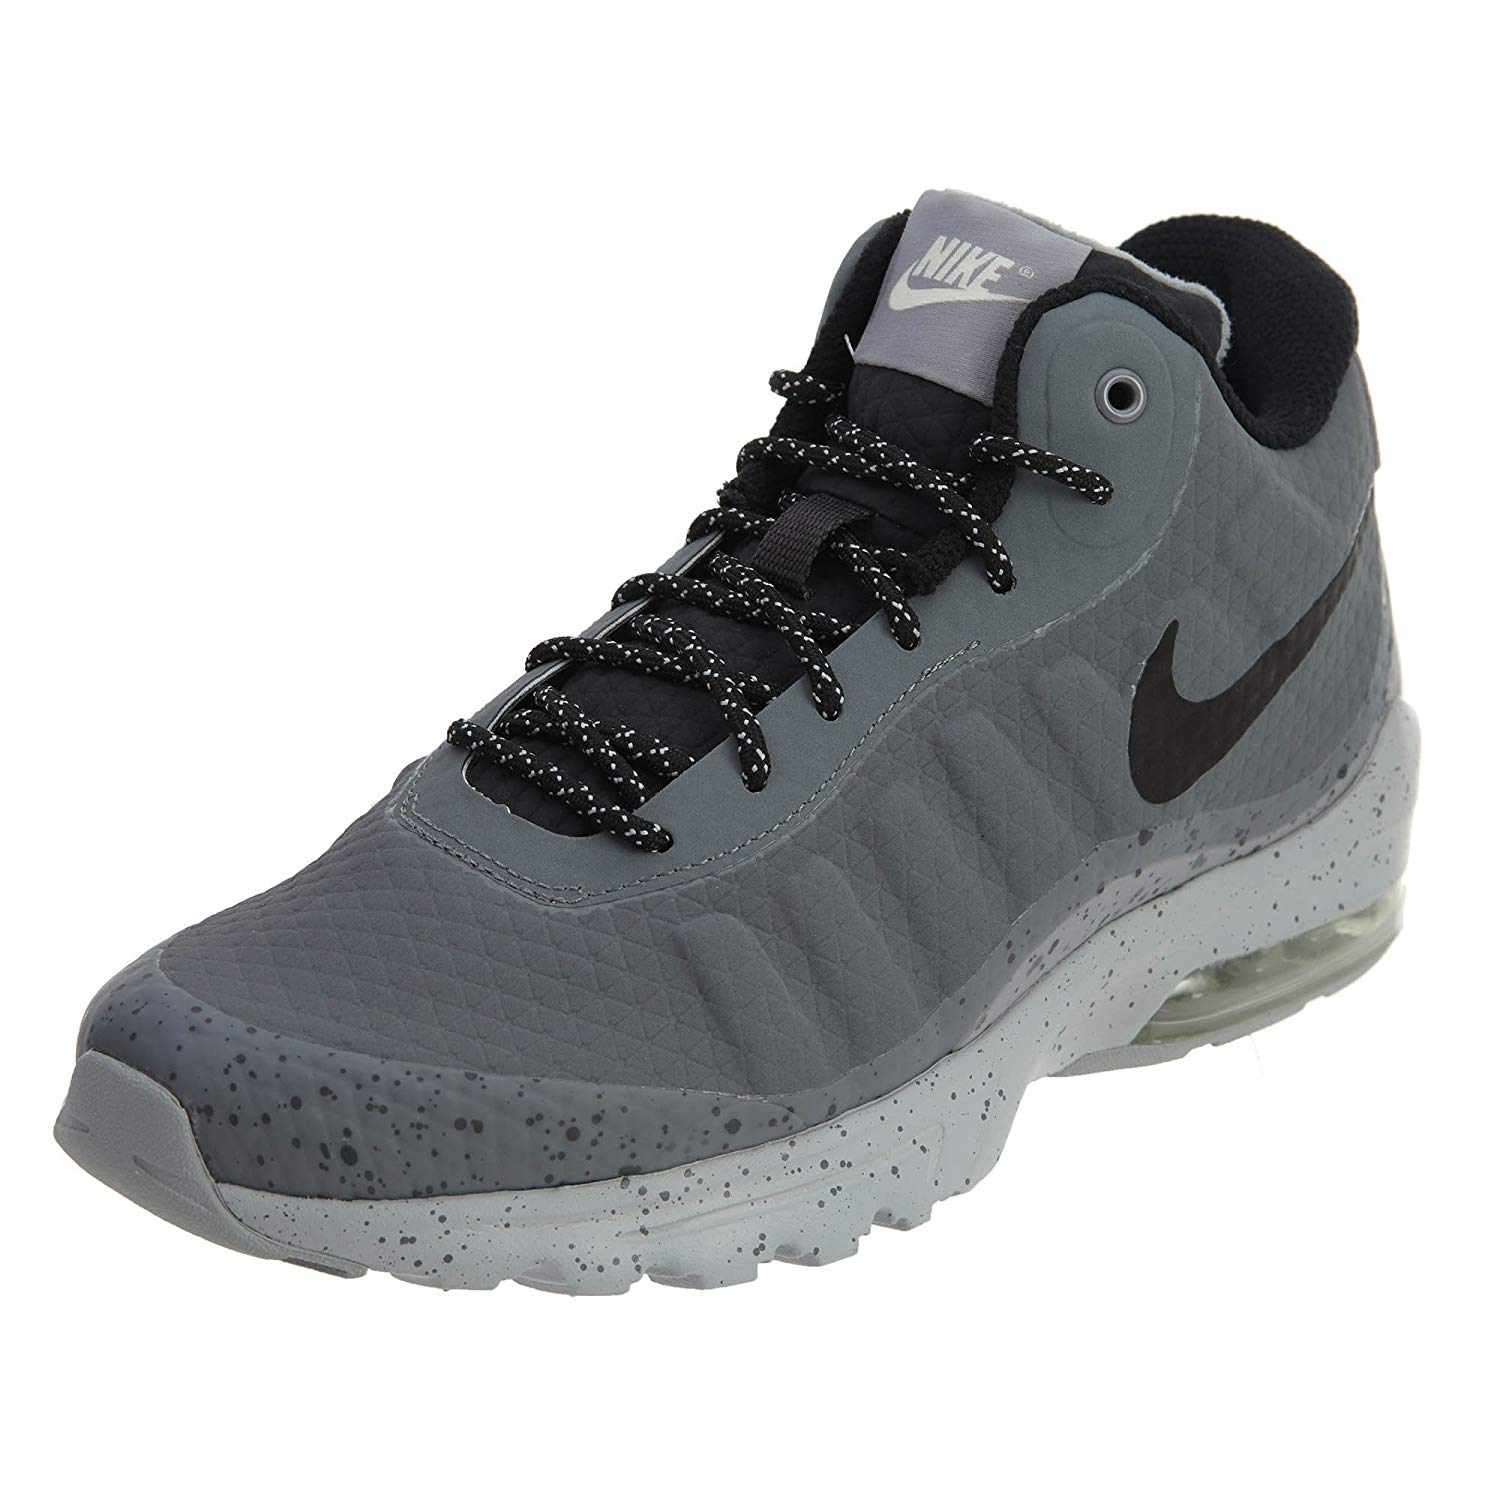 218e6070c9 Details about NIKE Mens Air Max Invigor Mid Athletic Boot